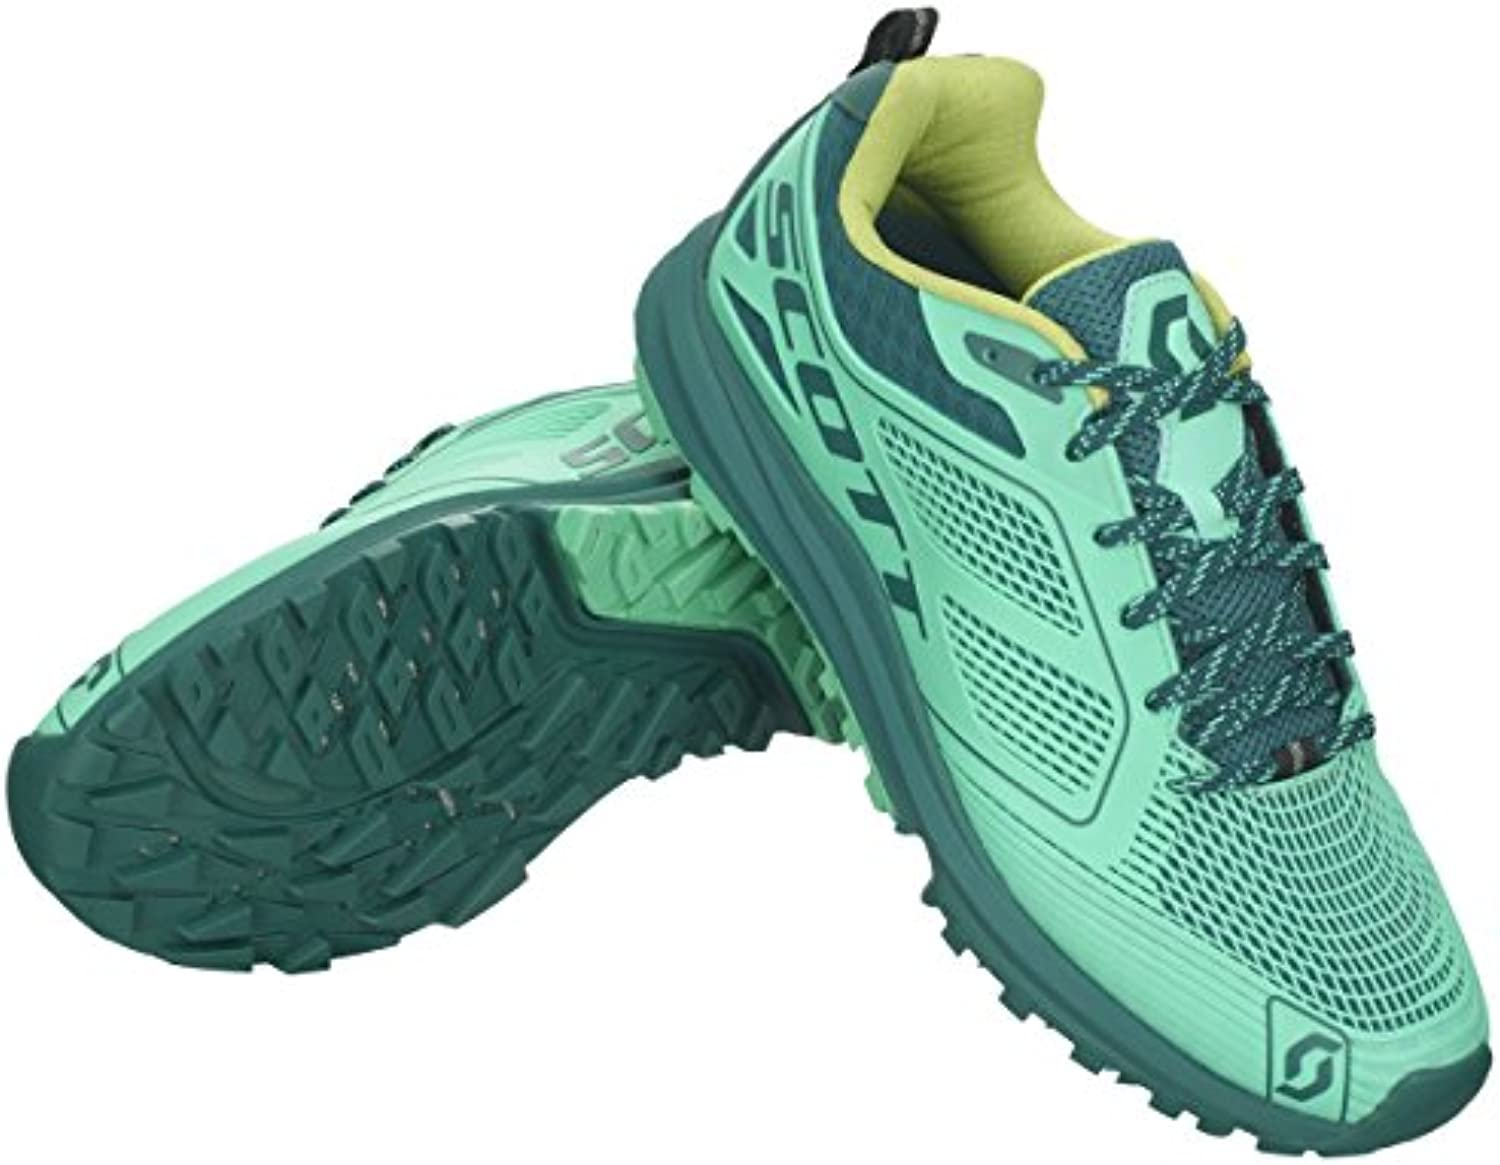 Scott running Zapatilla ws kinabalu enduro green 7.5 usa